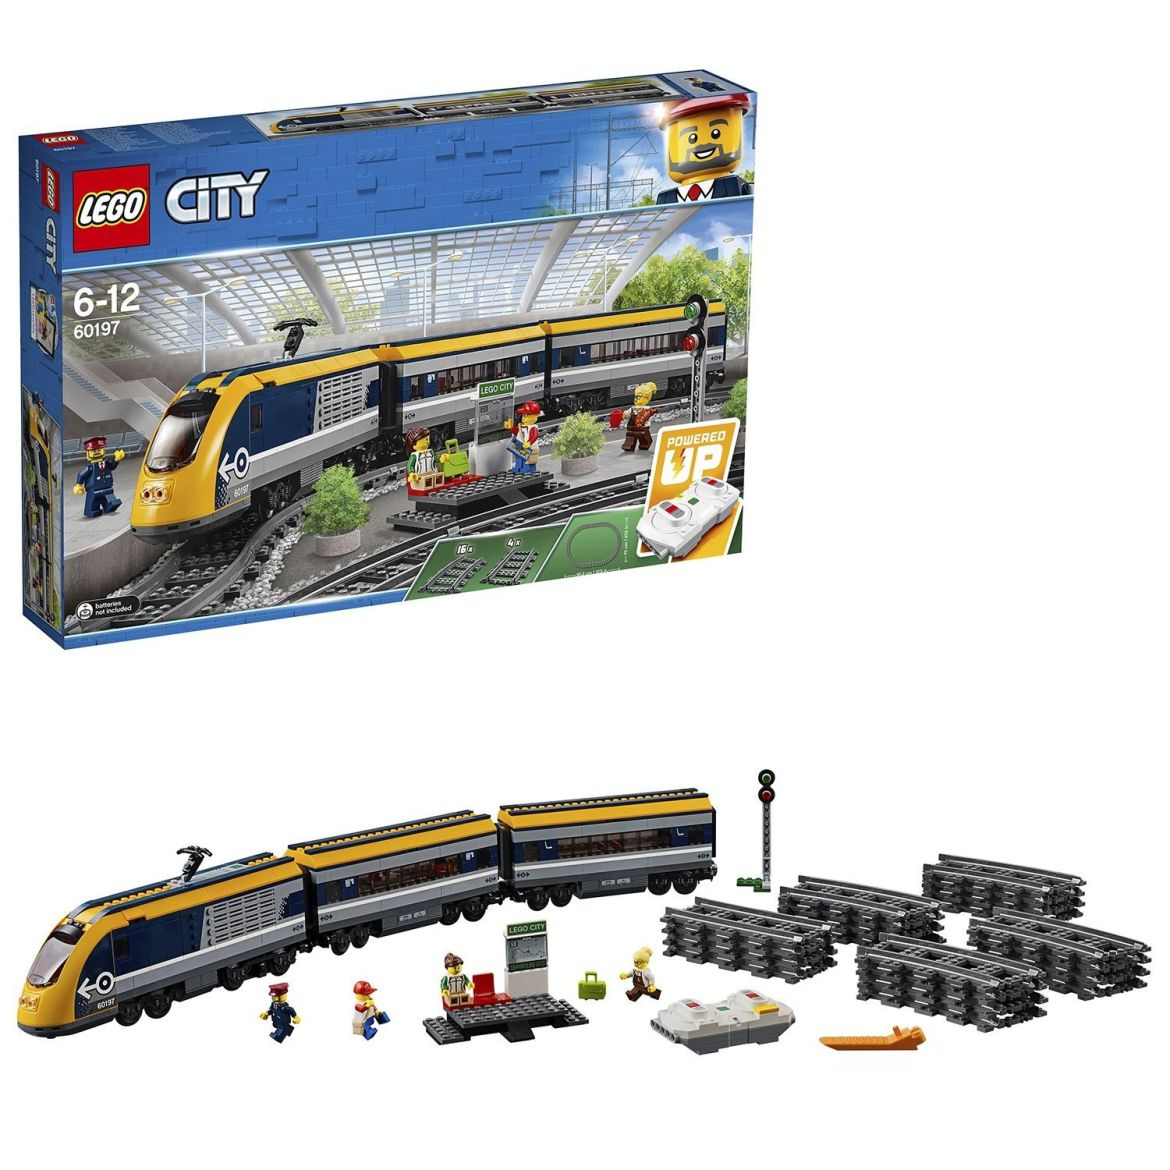 The Lego City train set just went on sale